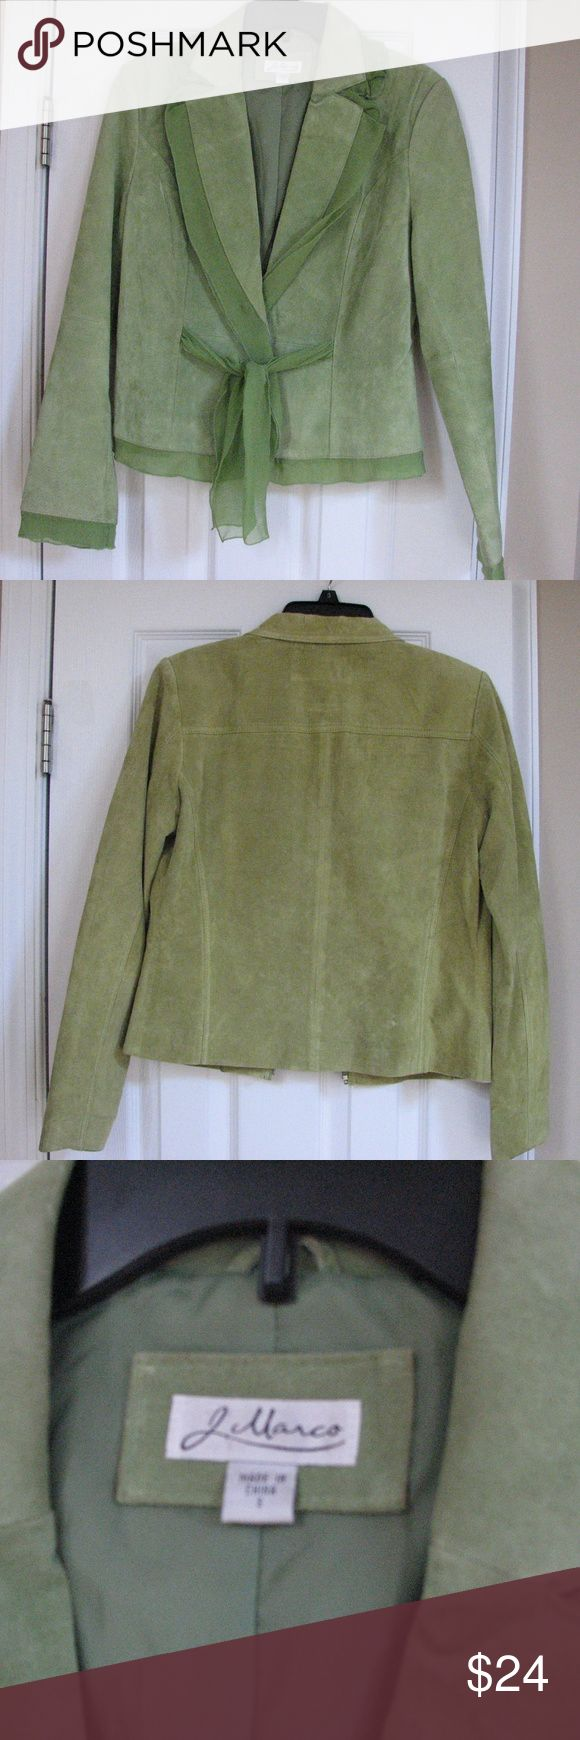 "Leather Suede J Marco Green Jacket Coat Lined Silk Excellent Used Condition Women's J Marco Leather Suede Green Jacket - Beautiful coat!  One snap (plastic snap) and tie closure  Size Small  The cuffs have slight staining- see photo.  You really have to look hard to find it.  Dry clean by leather specialist  100% leather outer, lining 100% polyester, trim 100% silk  APPROXIMATE measurements:  shoulder to hem 21.5"", sleeve 24"" including trim J Marco Jackets & Coats"